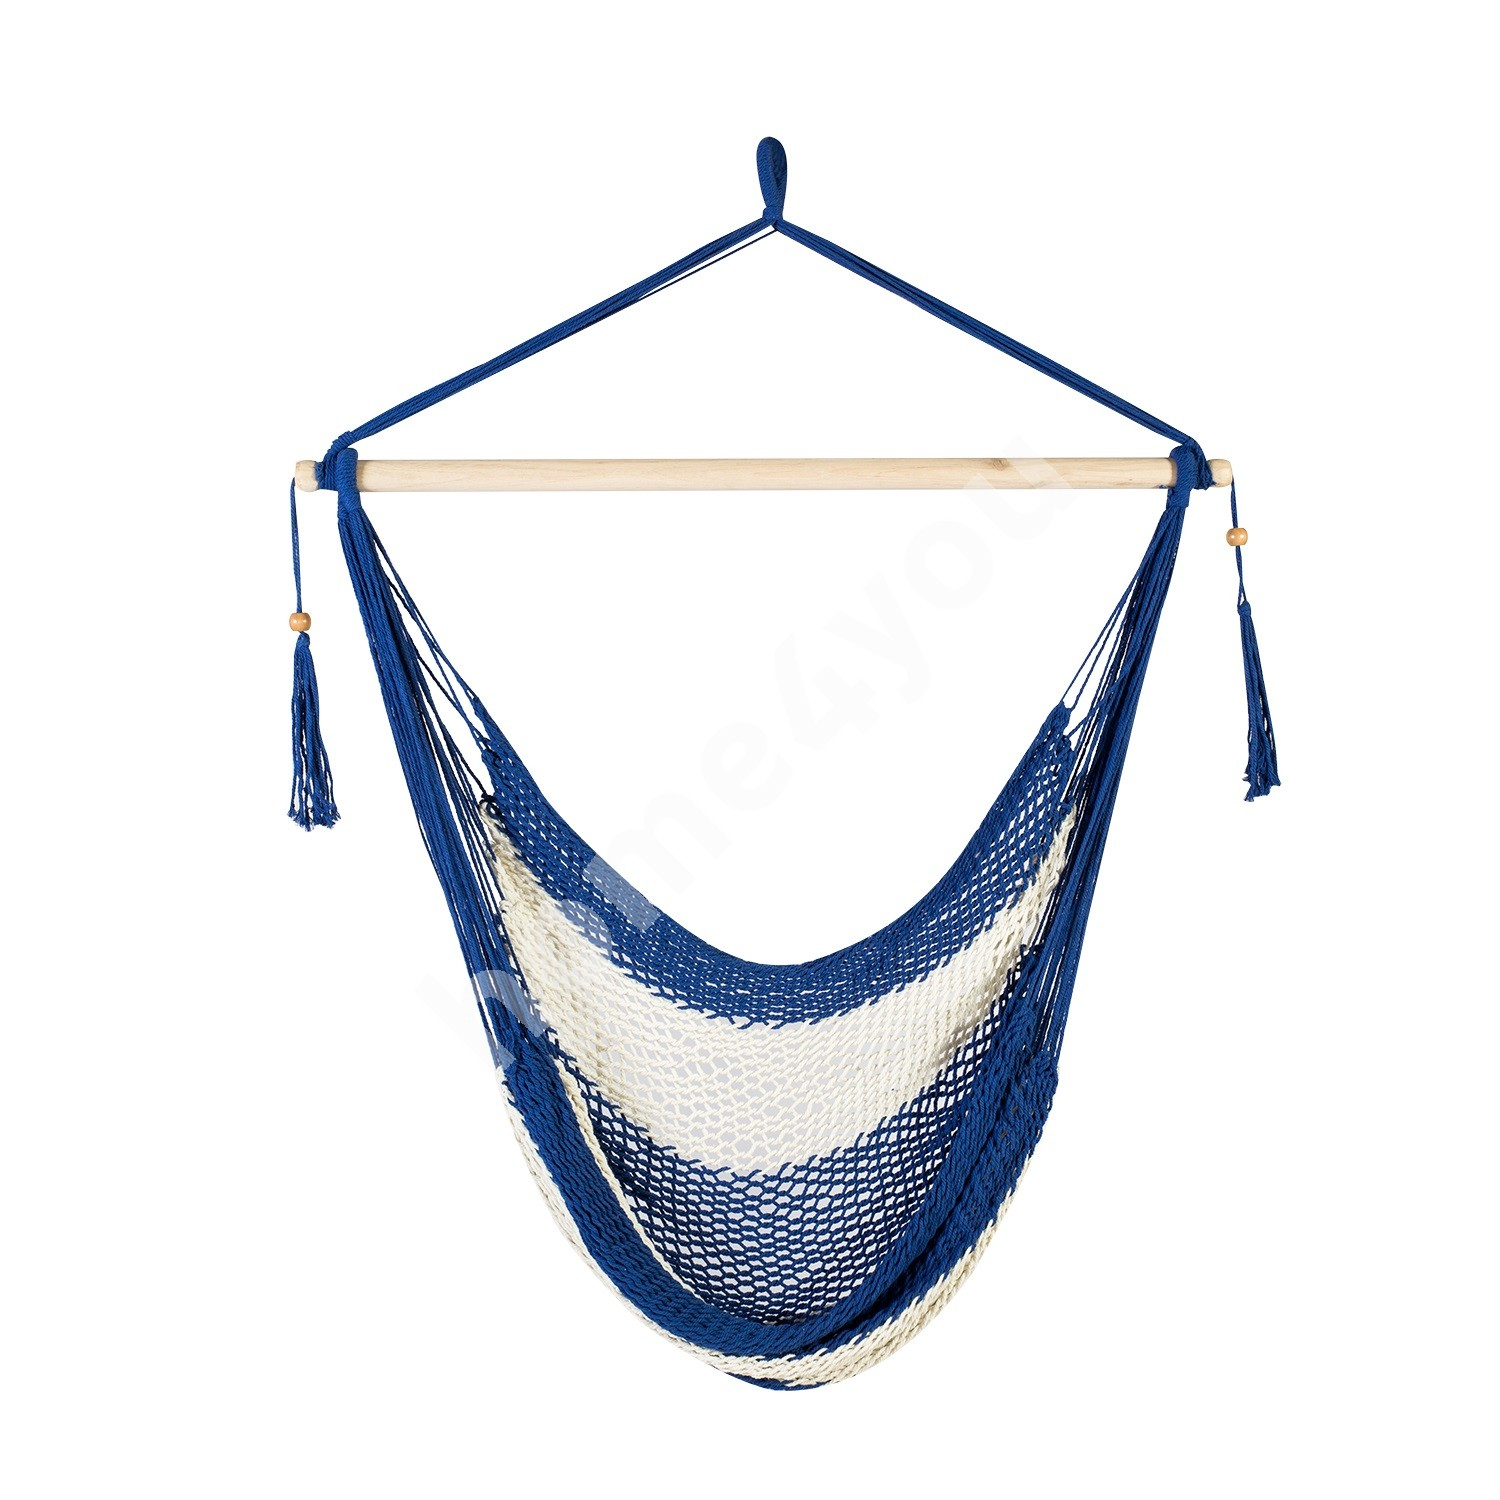 Swing chair CARINA, material: cotton, color: blue - white striped